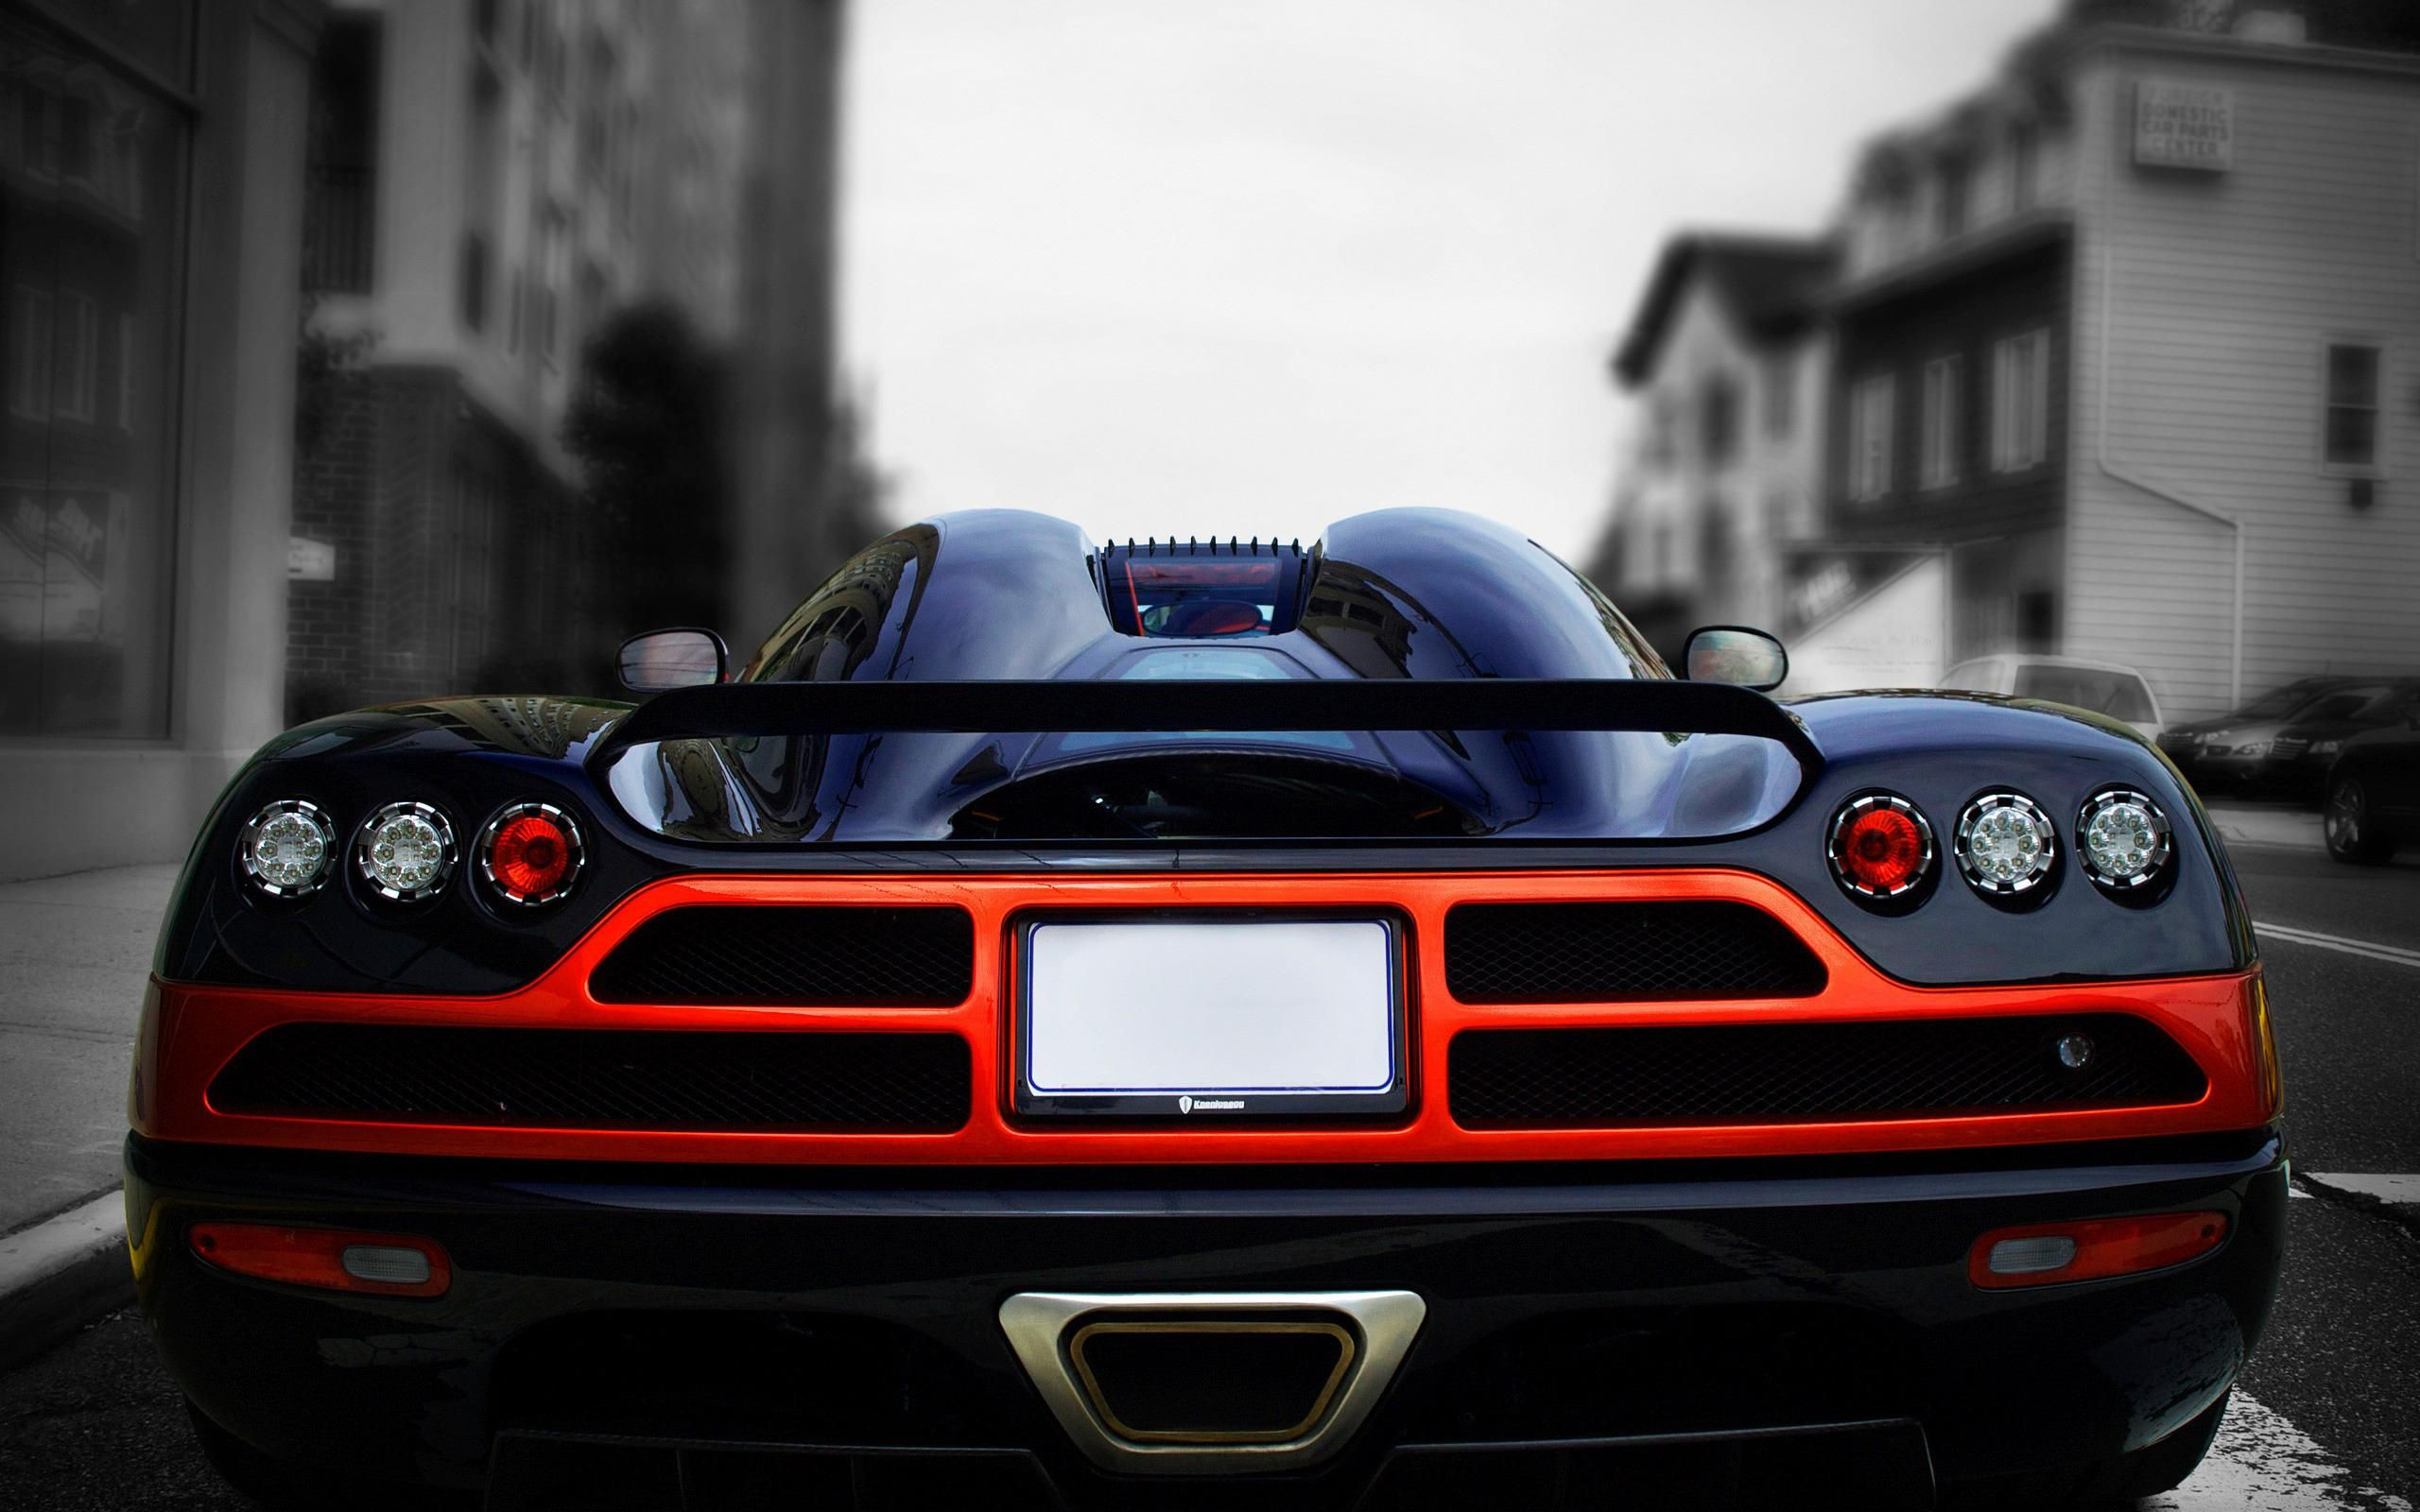 Ultra Hd Car Wallpapers Car 4k Wallpaper For Pc Is Amazing Hd Wallpapers For Desktop Or Mobile Explore More Related Wallpaper Pict In 2020 Koenigsegg Super Cars Car